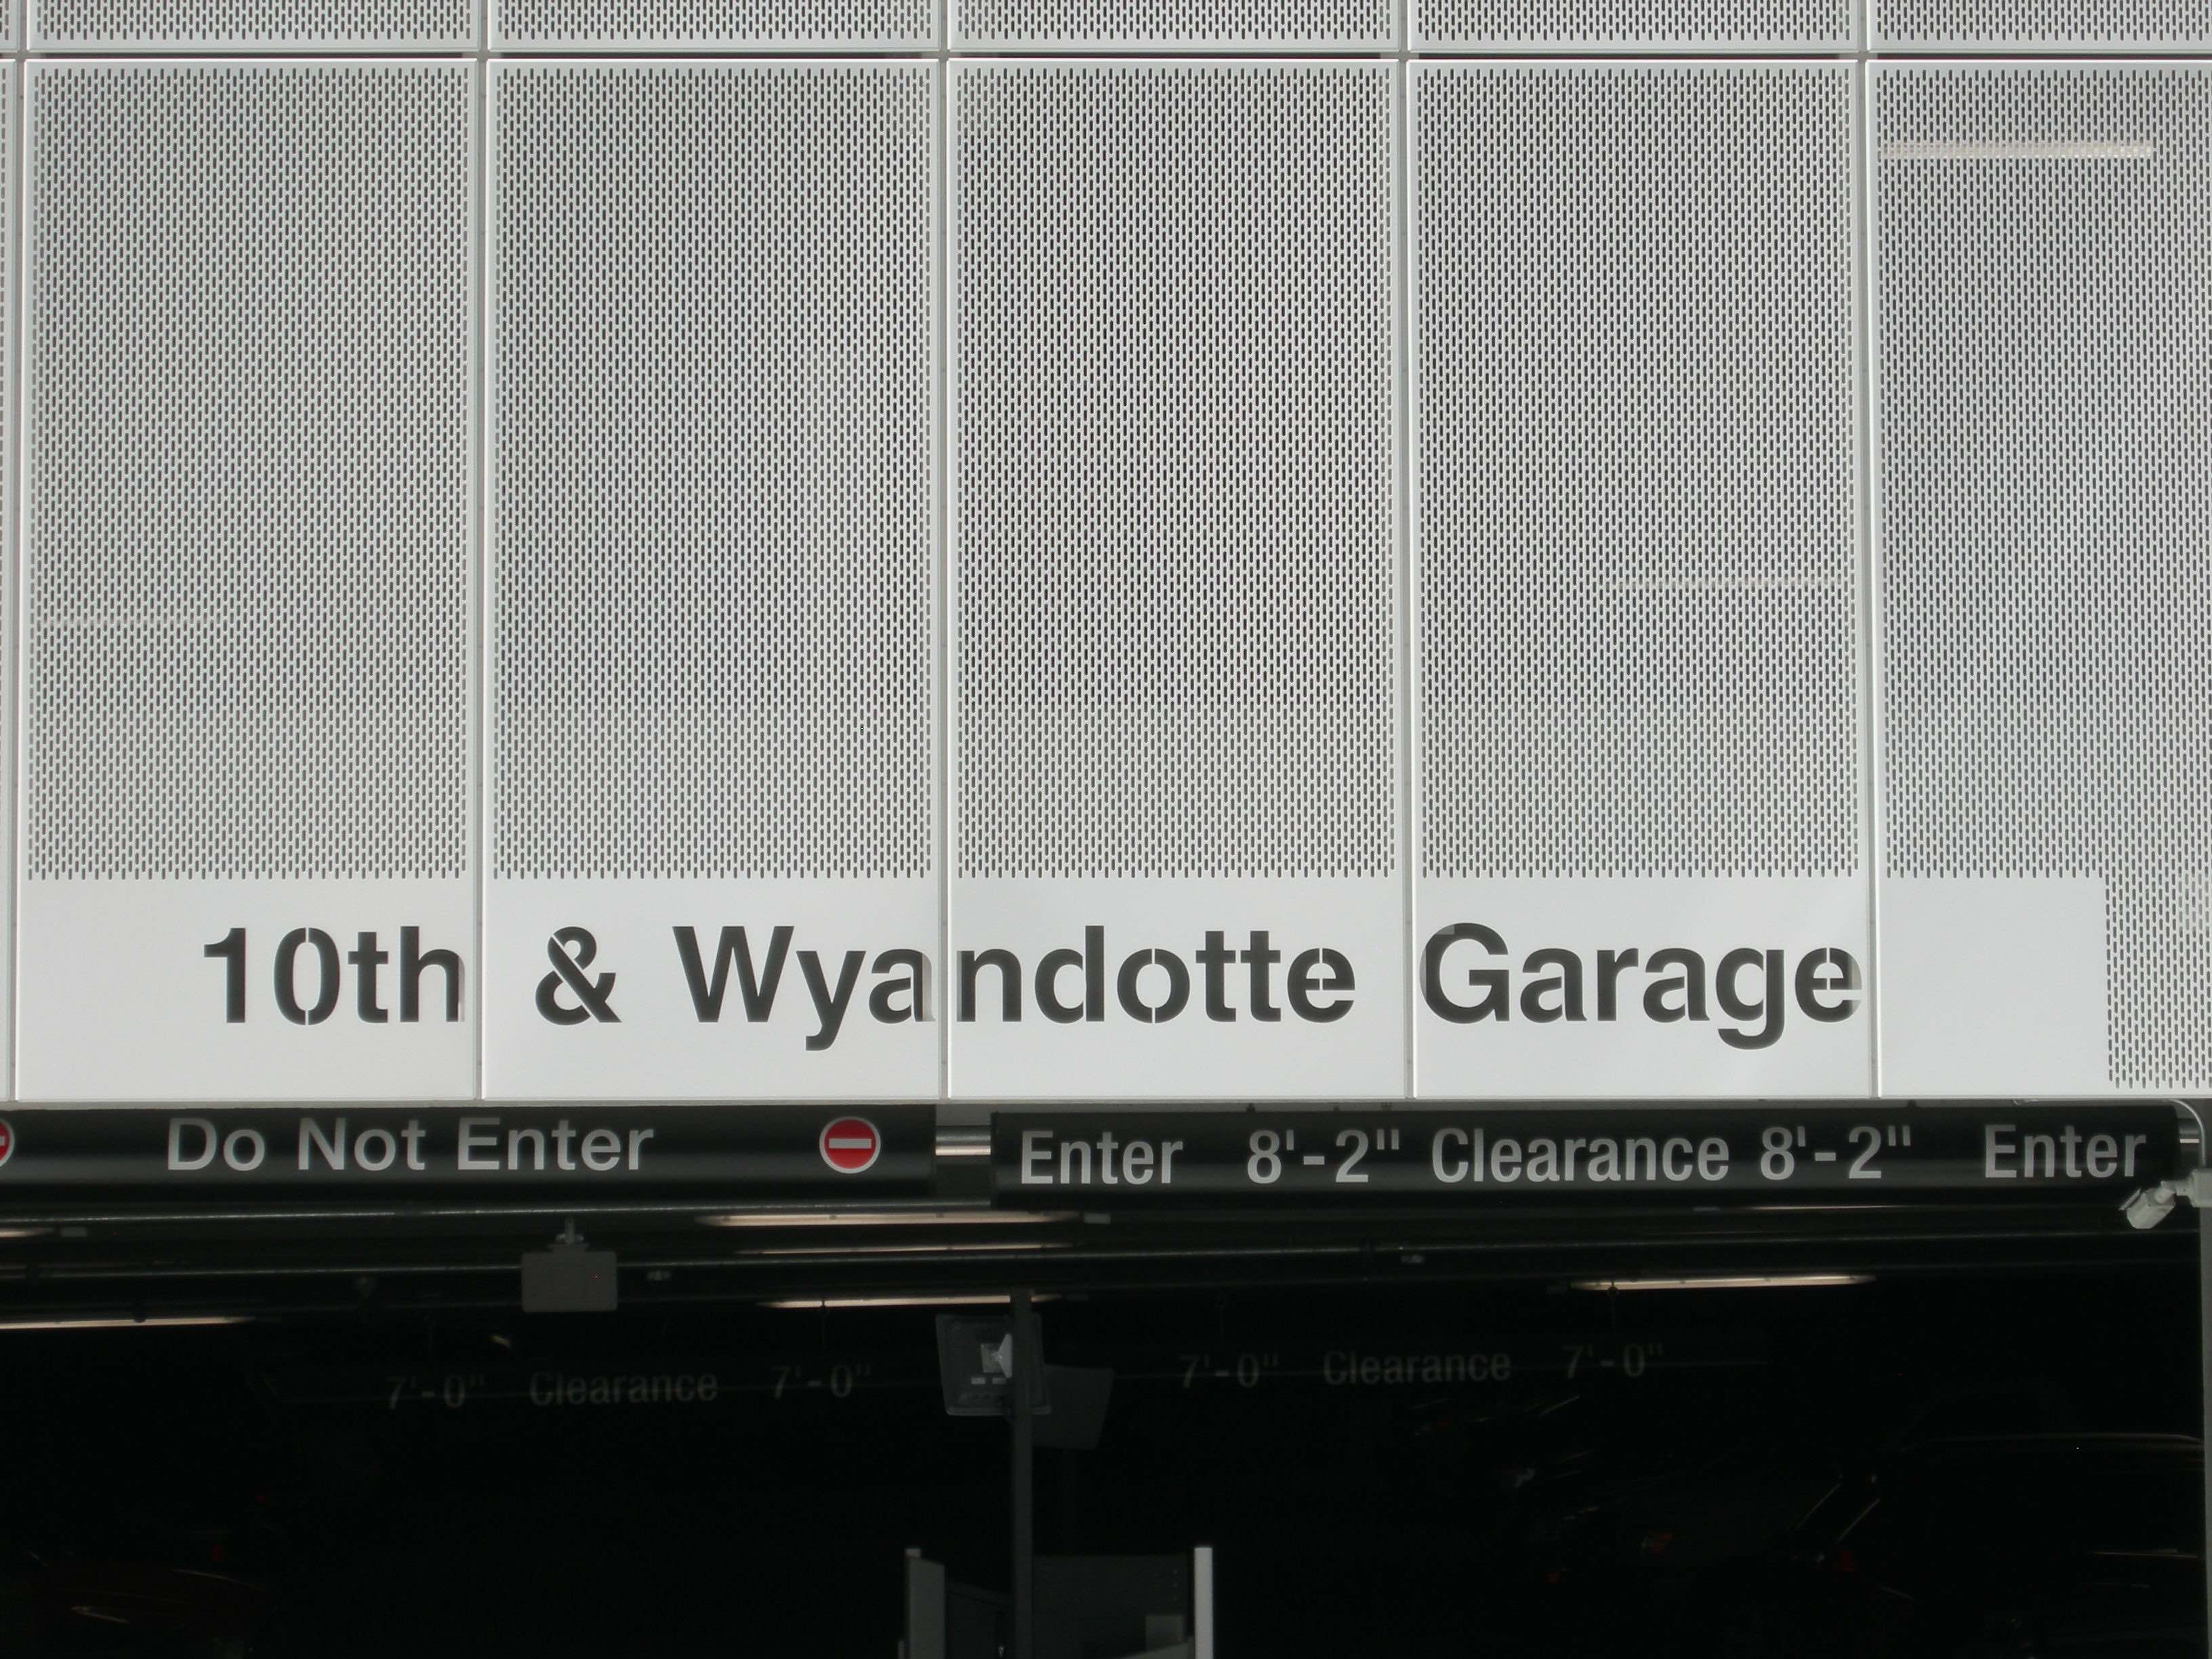 10th Amp Wyandotte Parking Garage Standard Sheet Metal